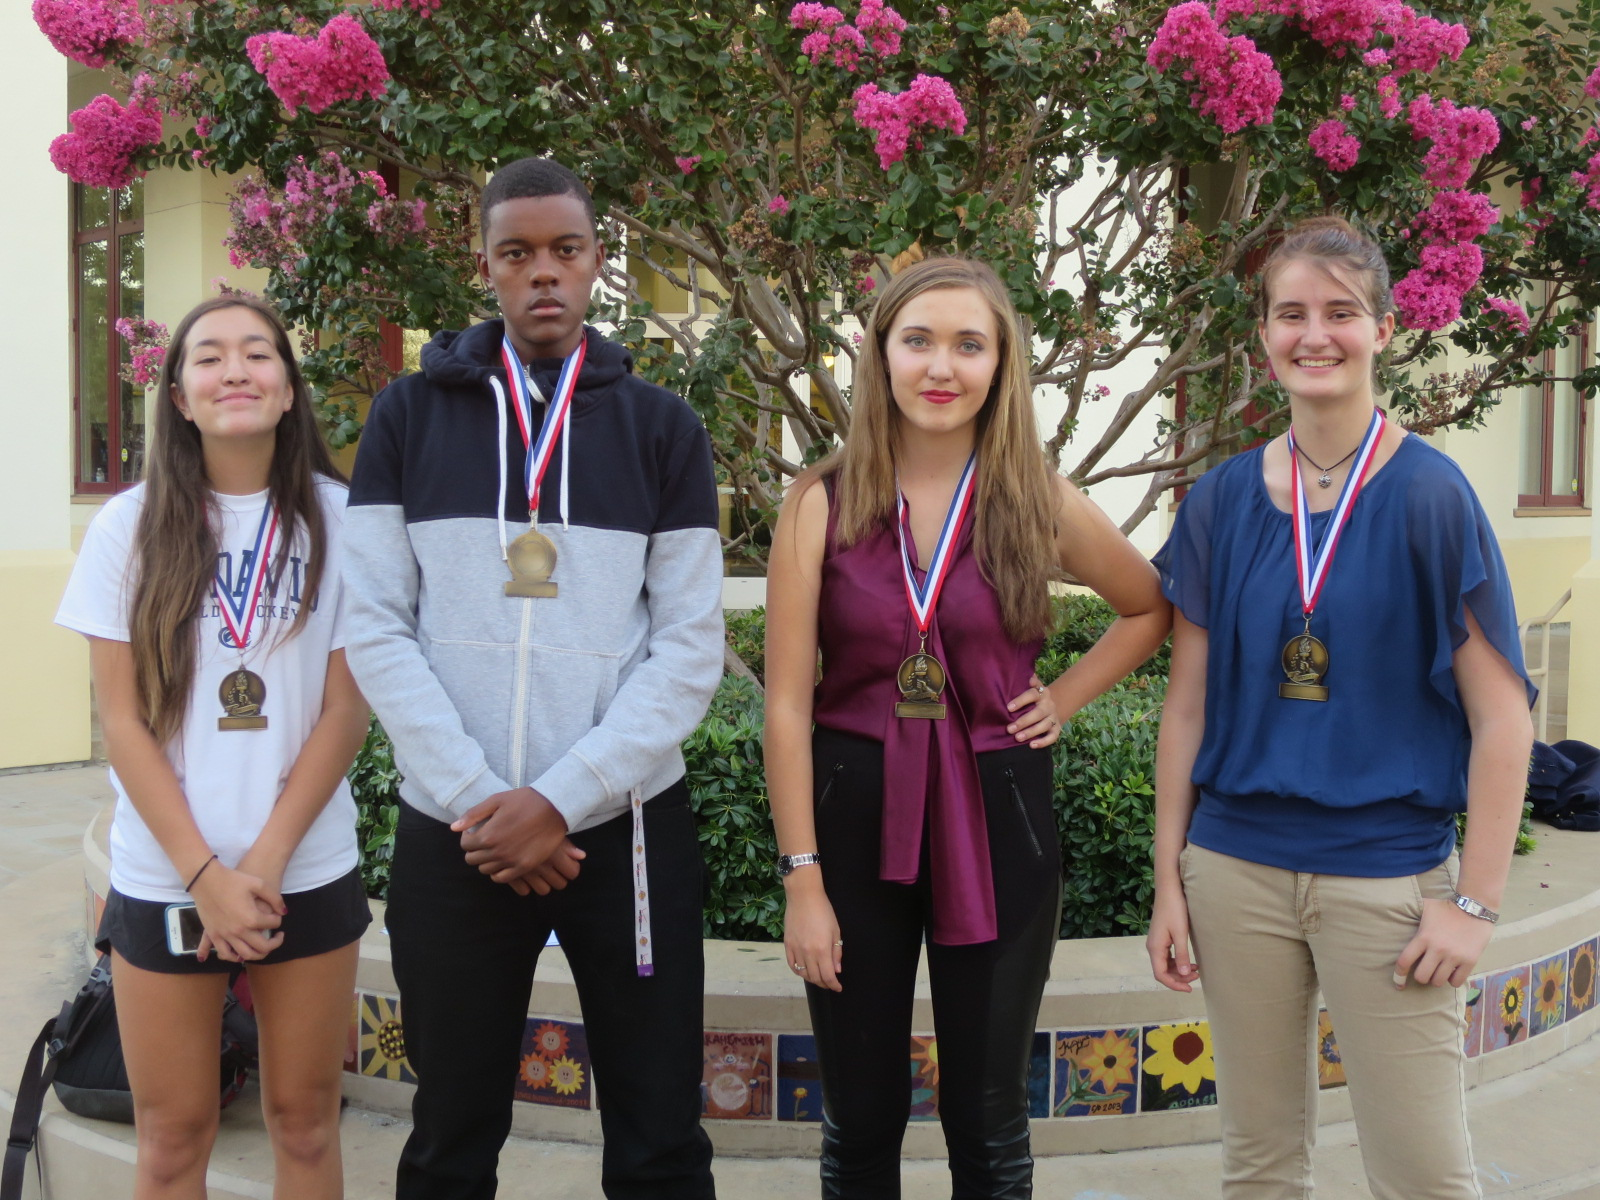 Tournament finalists Bishop O'Dowd Sophia Yau-Weeks & Shawn Cunningham and Windsor Claire Ernst & Anna Skarr